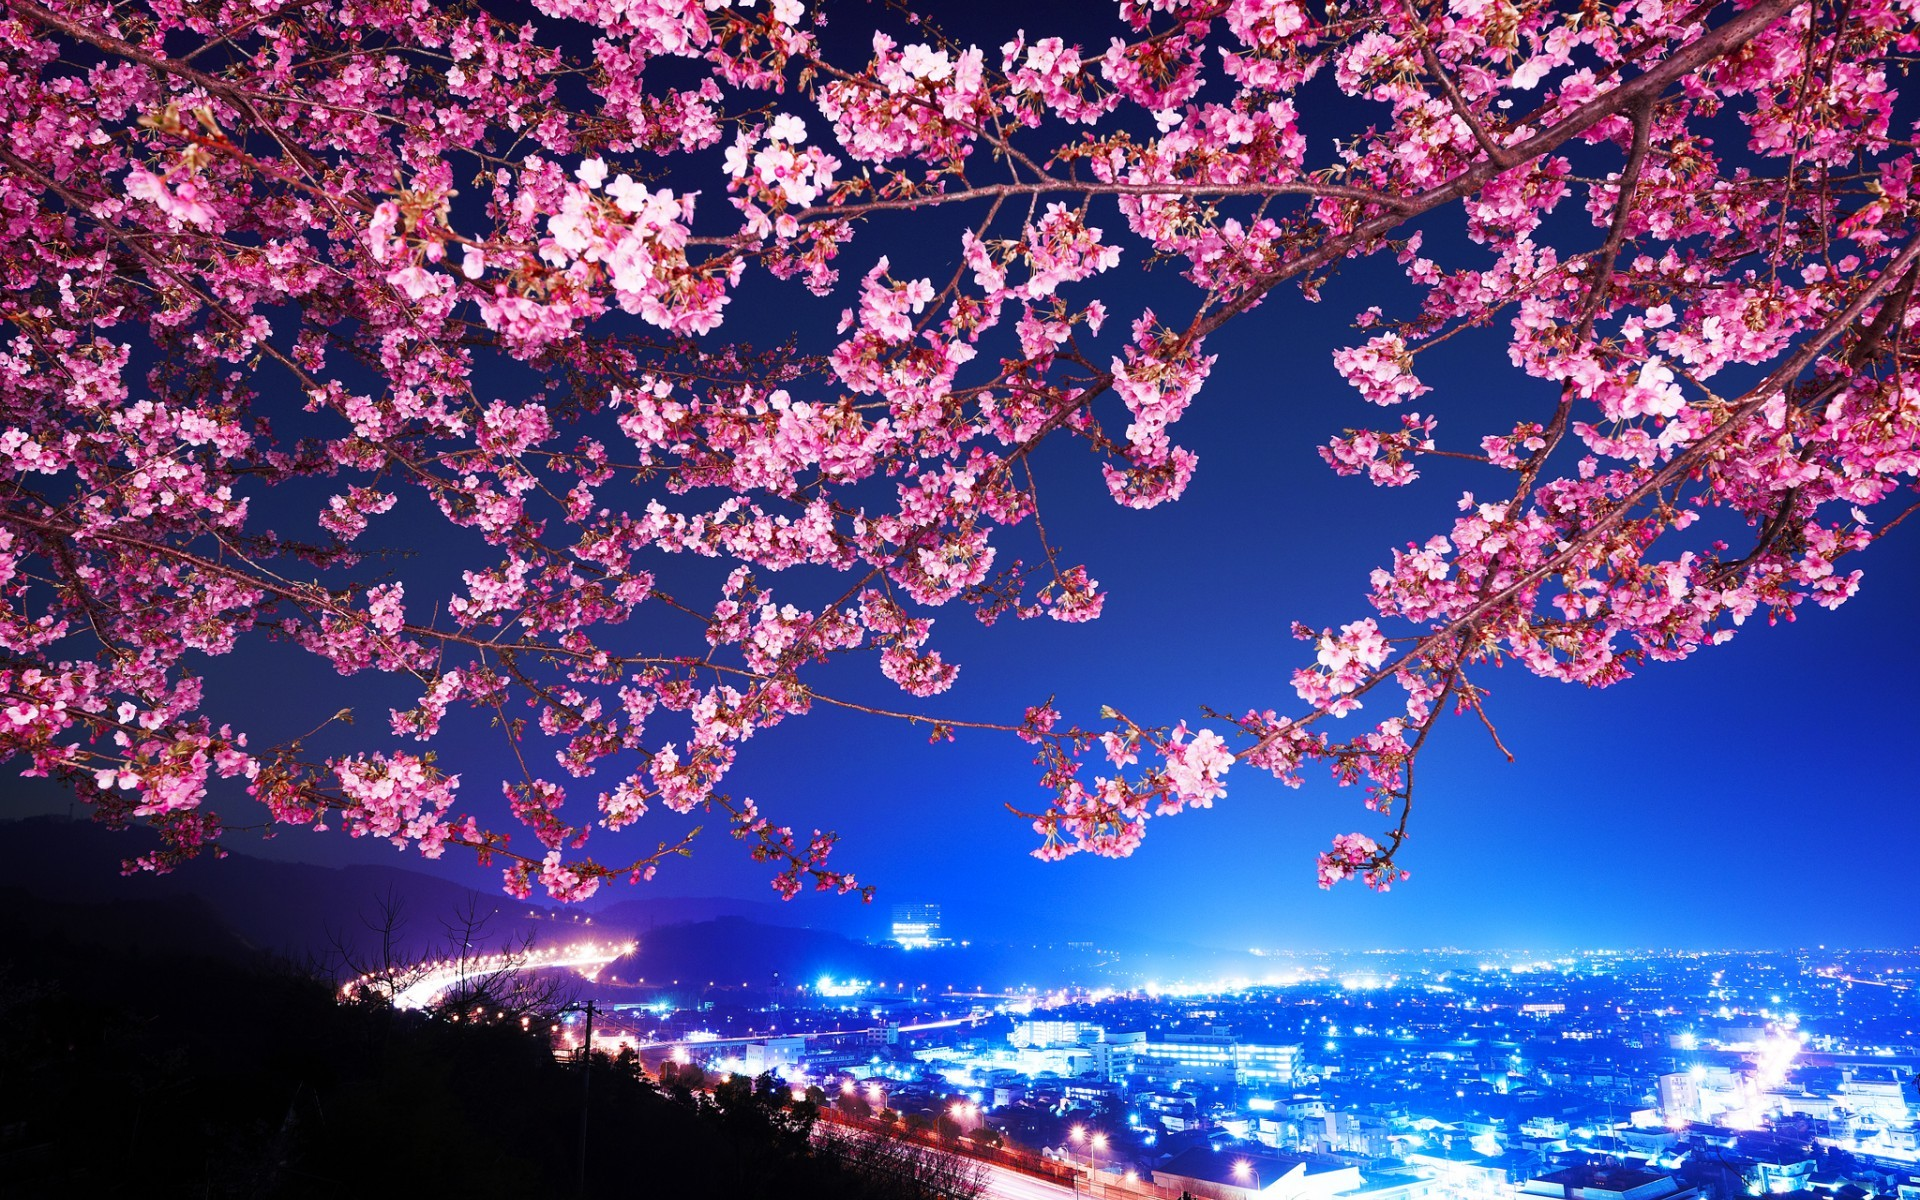 1920x1200 Mimura Japan Sakura Cherry blossom Highway City night trees flowers  blossoms wallpaper |  | 29788 | WallpaperUP